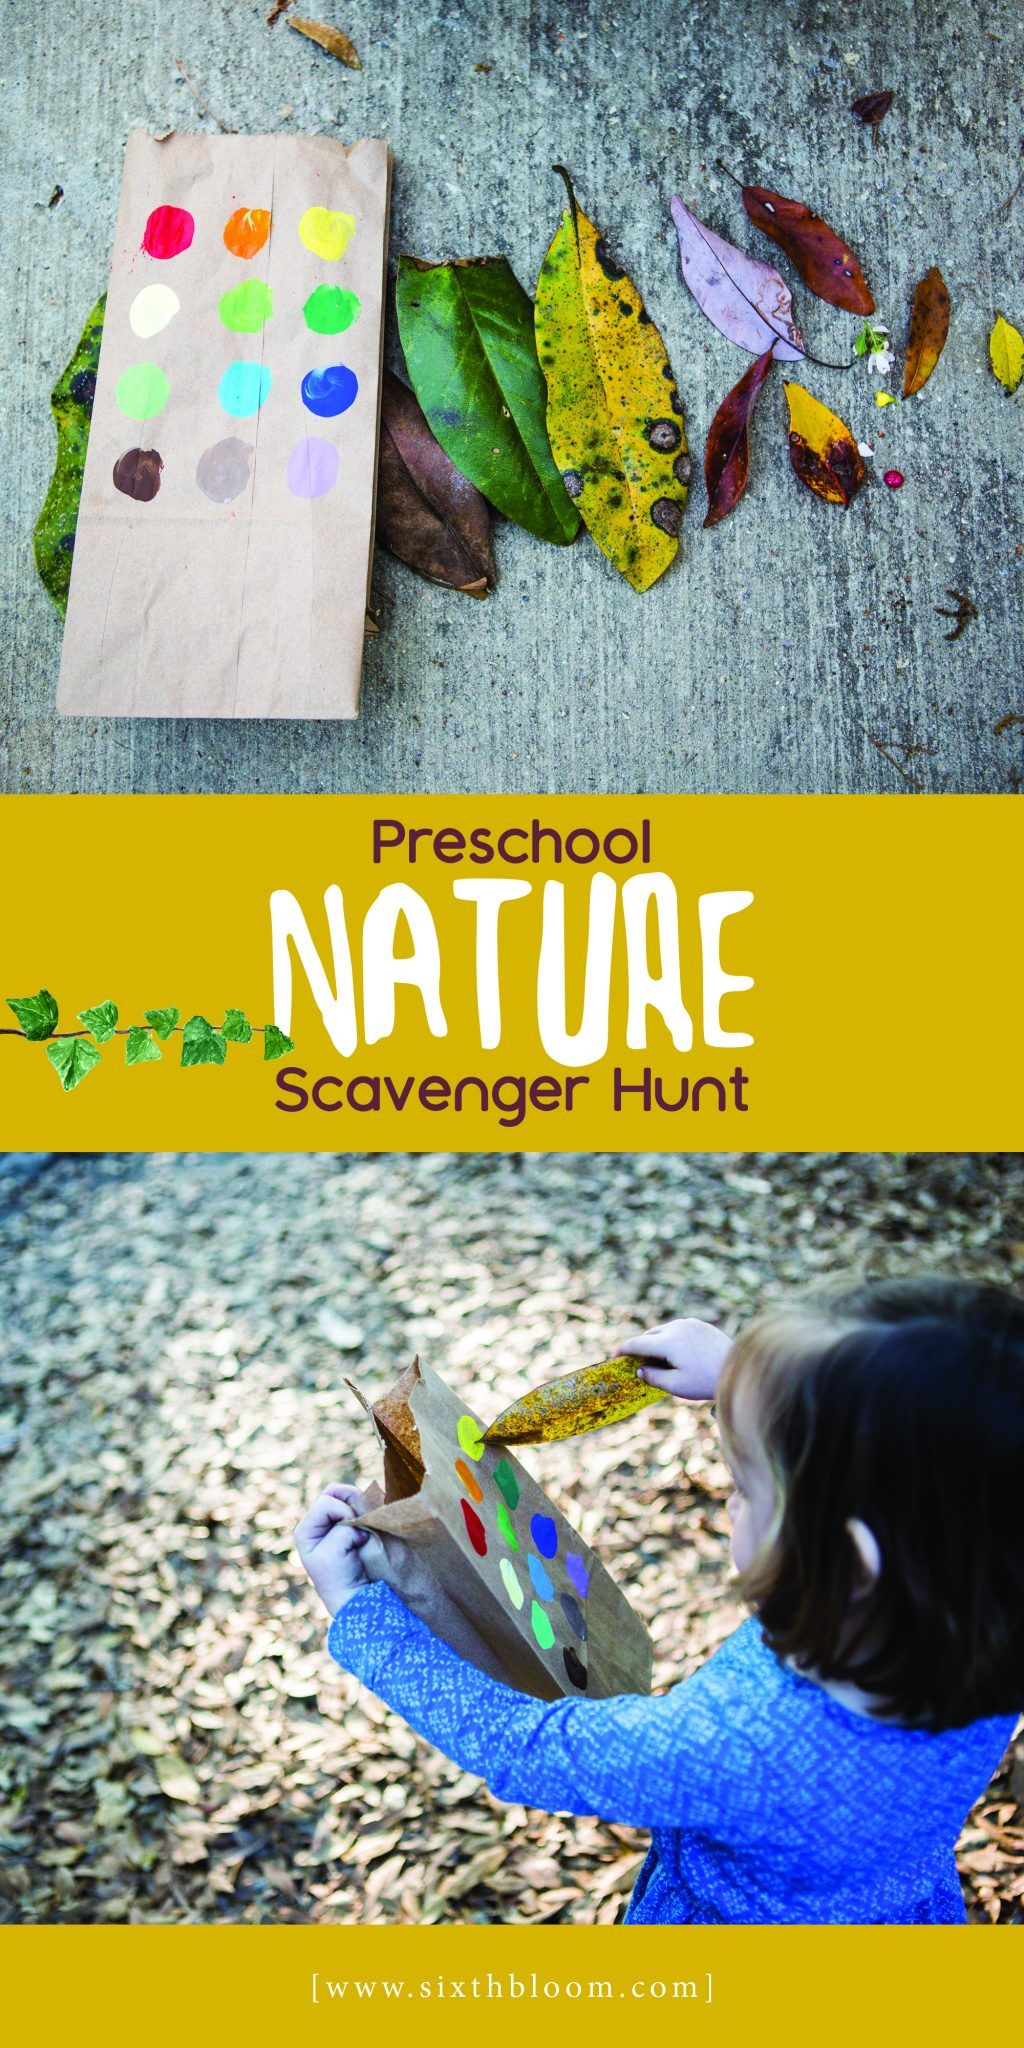 Preschool Nature Scavenger hunt